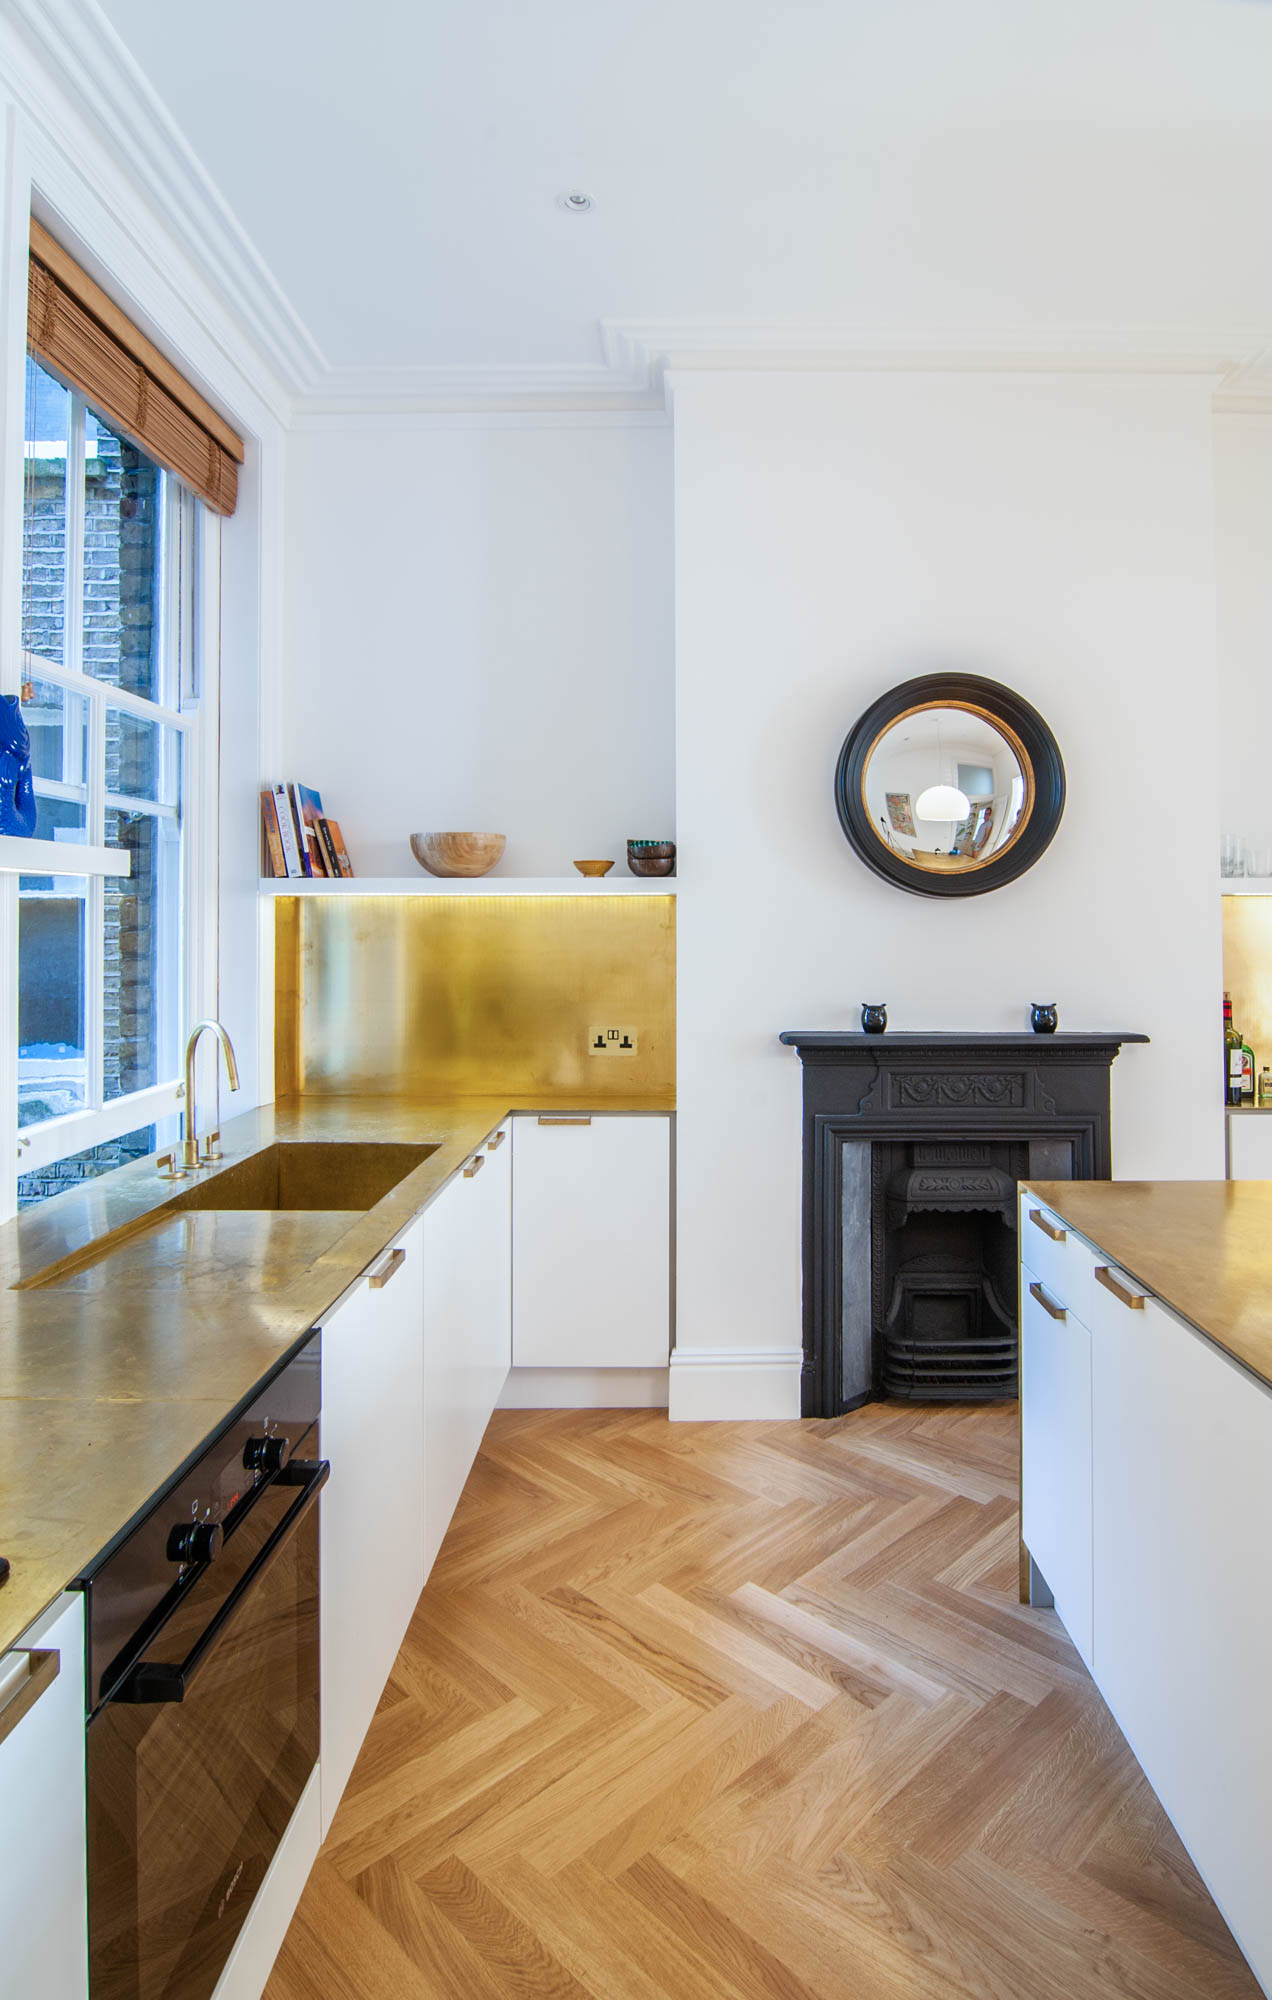 Beautiful brass gold worktops work perfectly with the parquet floors, white cabinets and black fireplace.